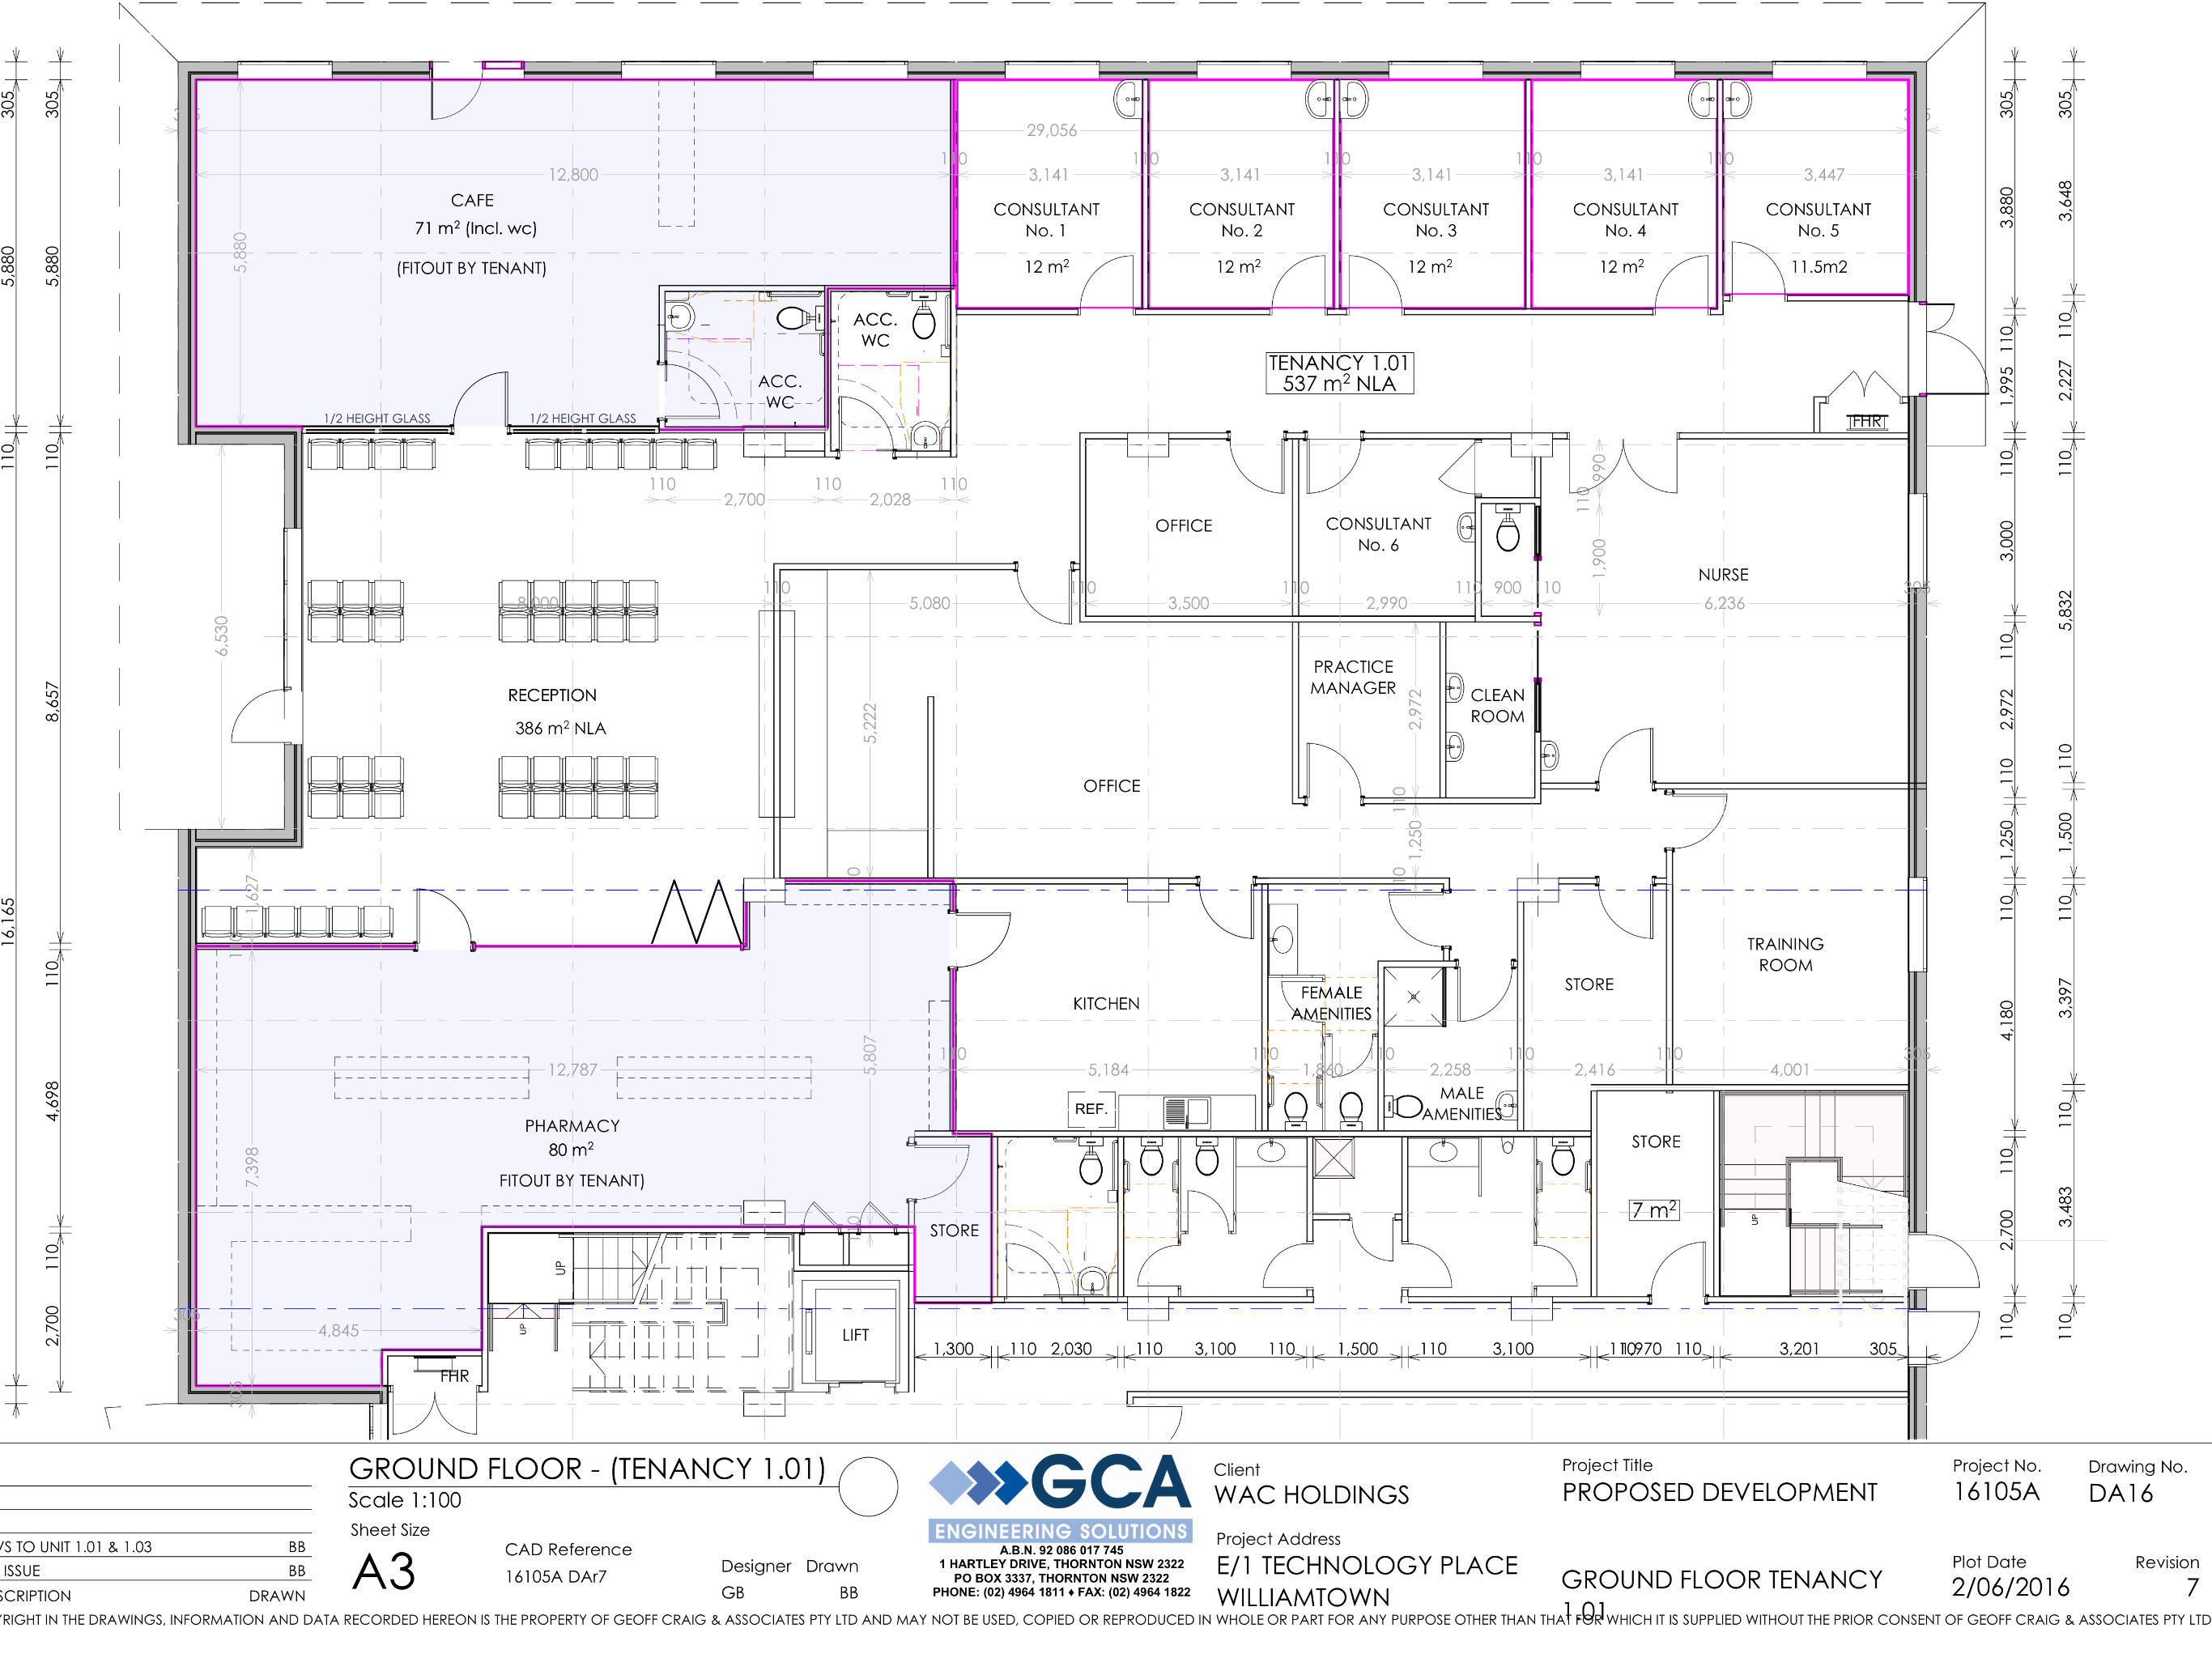 Plans for one of two floors of the new centre.